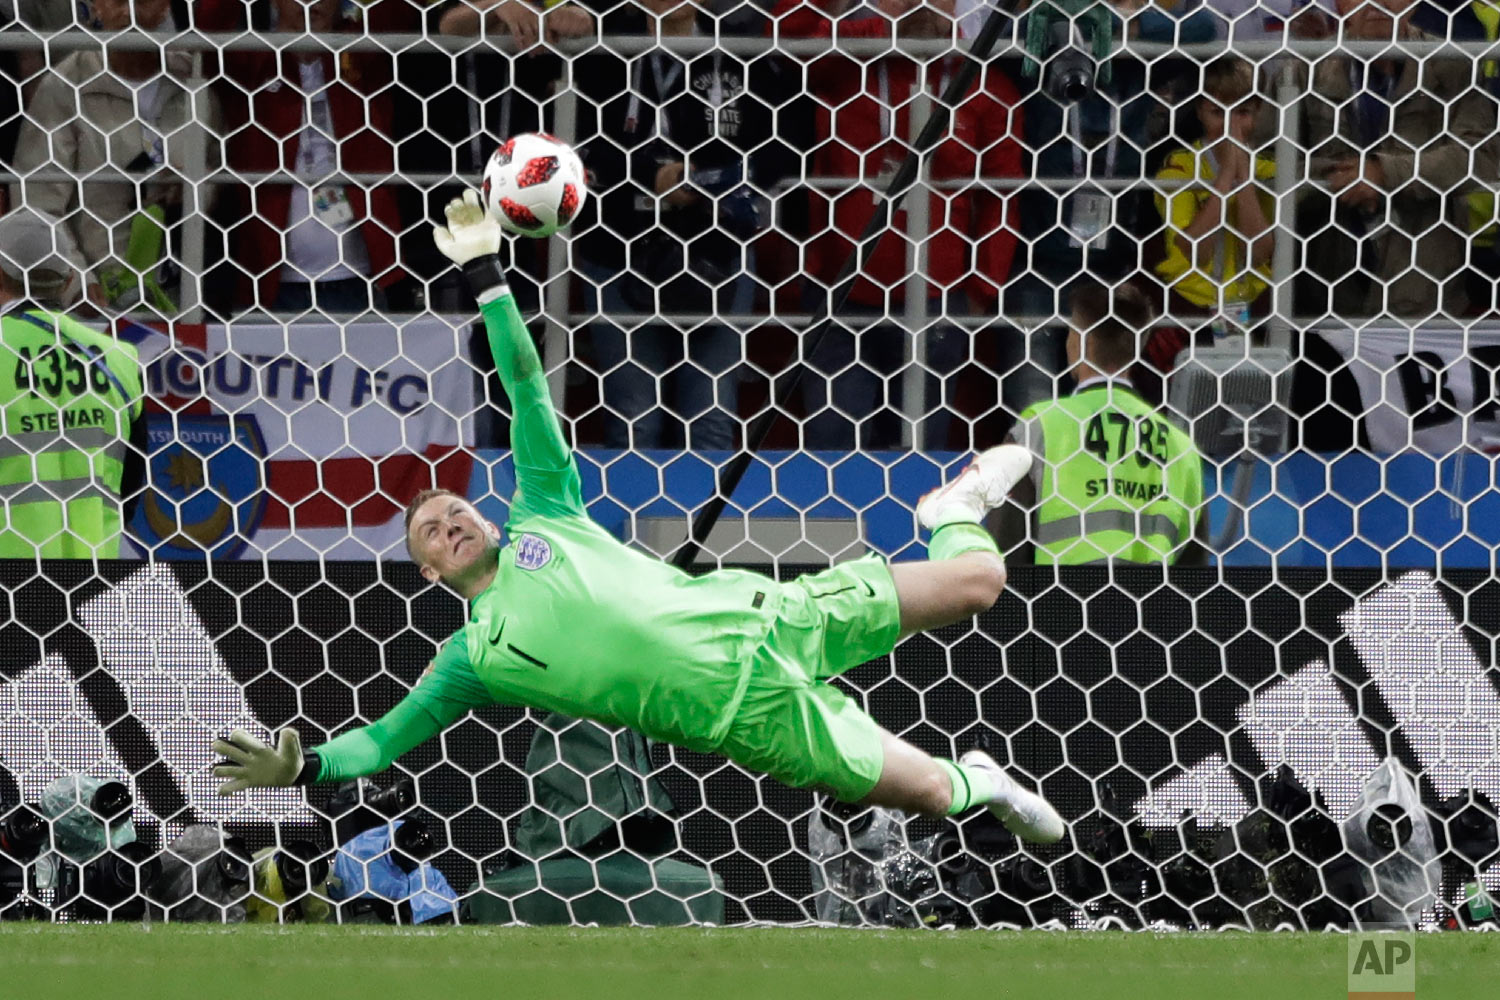 England goalkeeper Jordan Pickford saves a penalty during the round of 16 match between Colombia and England at the 2018 soccer World Cup in the Spartak Stadium, in Moscow, Russia on July 3, 2018. (AP Photo/Matthias Schrader)